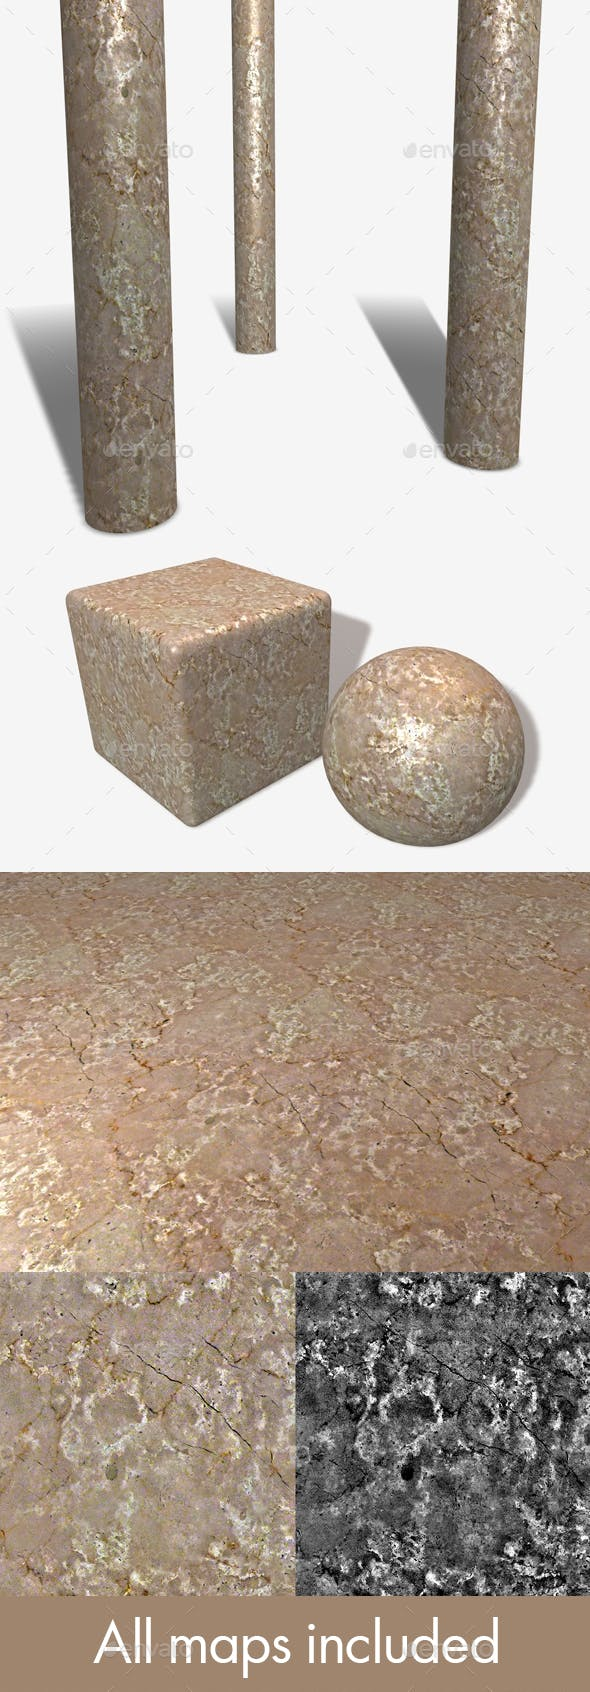 Beige Marble Seamless Texture - 3DOcean Item for Sale